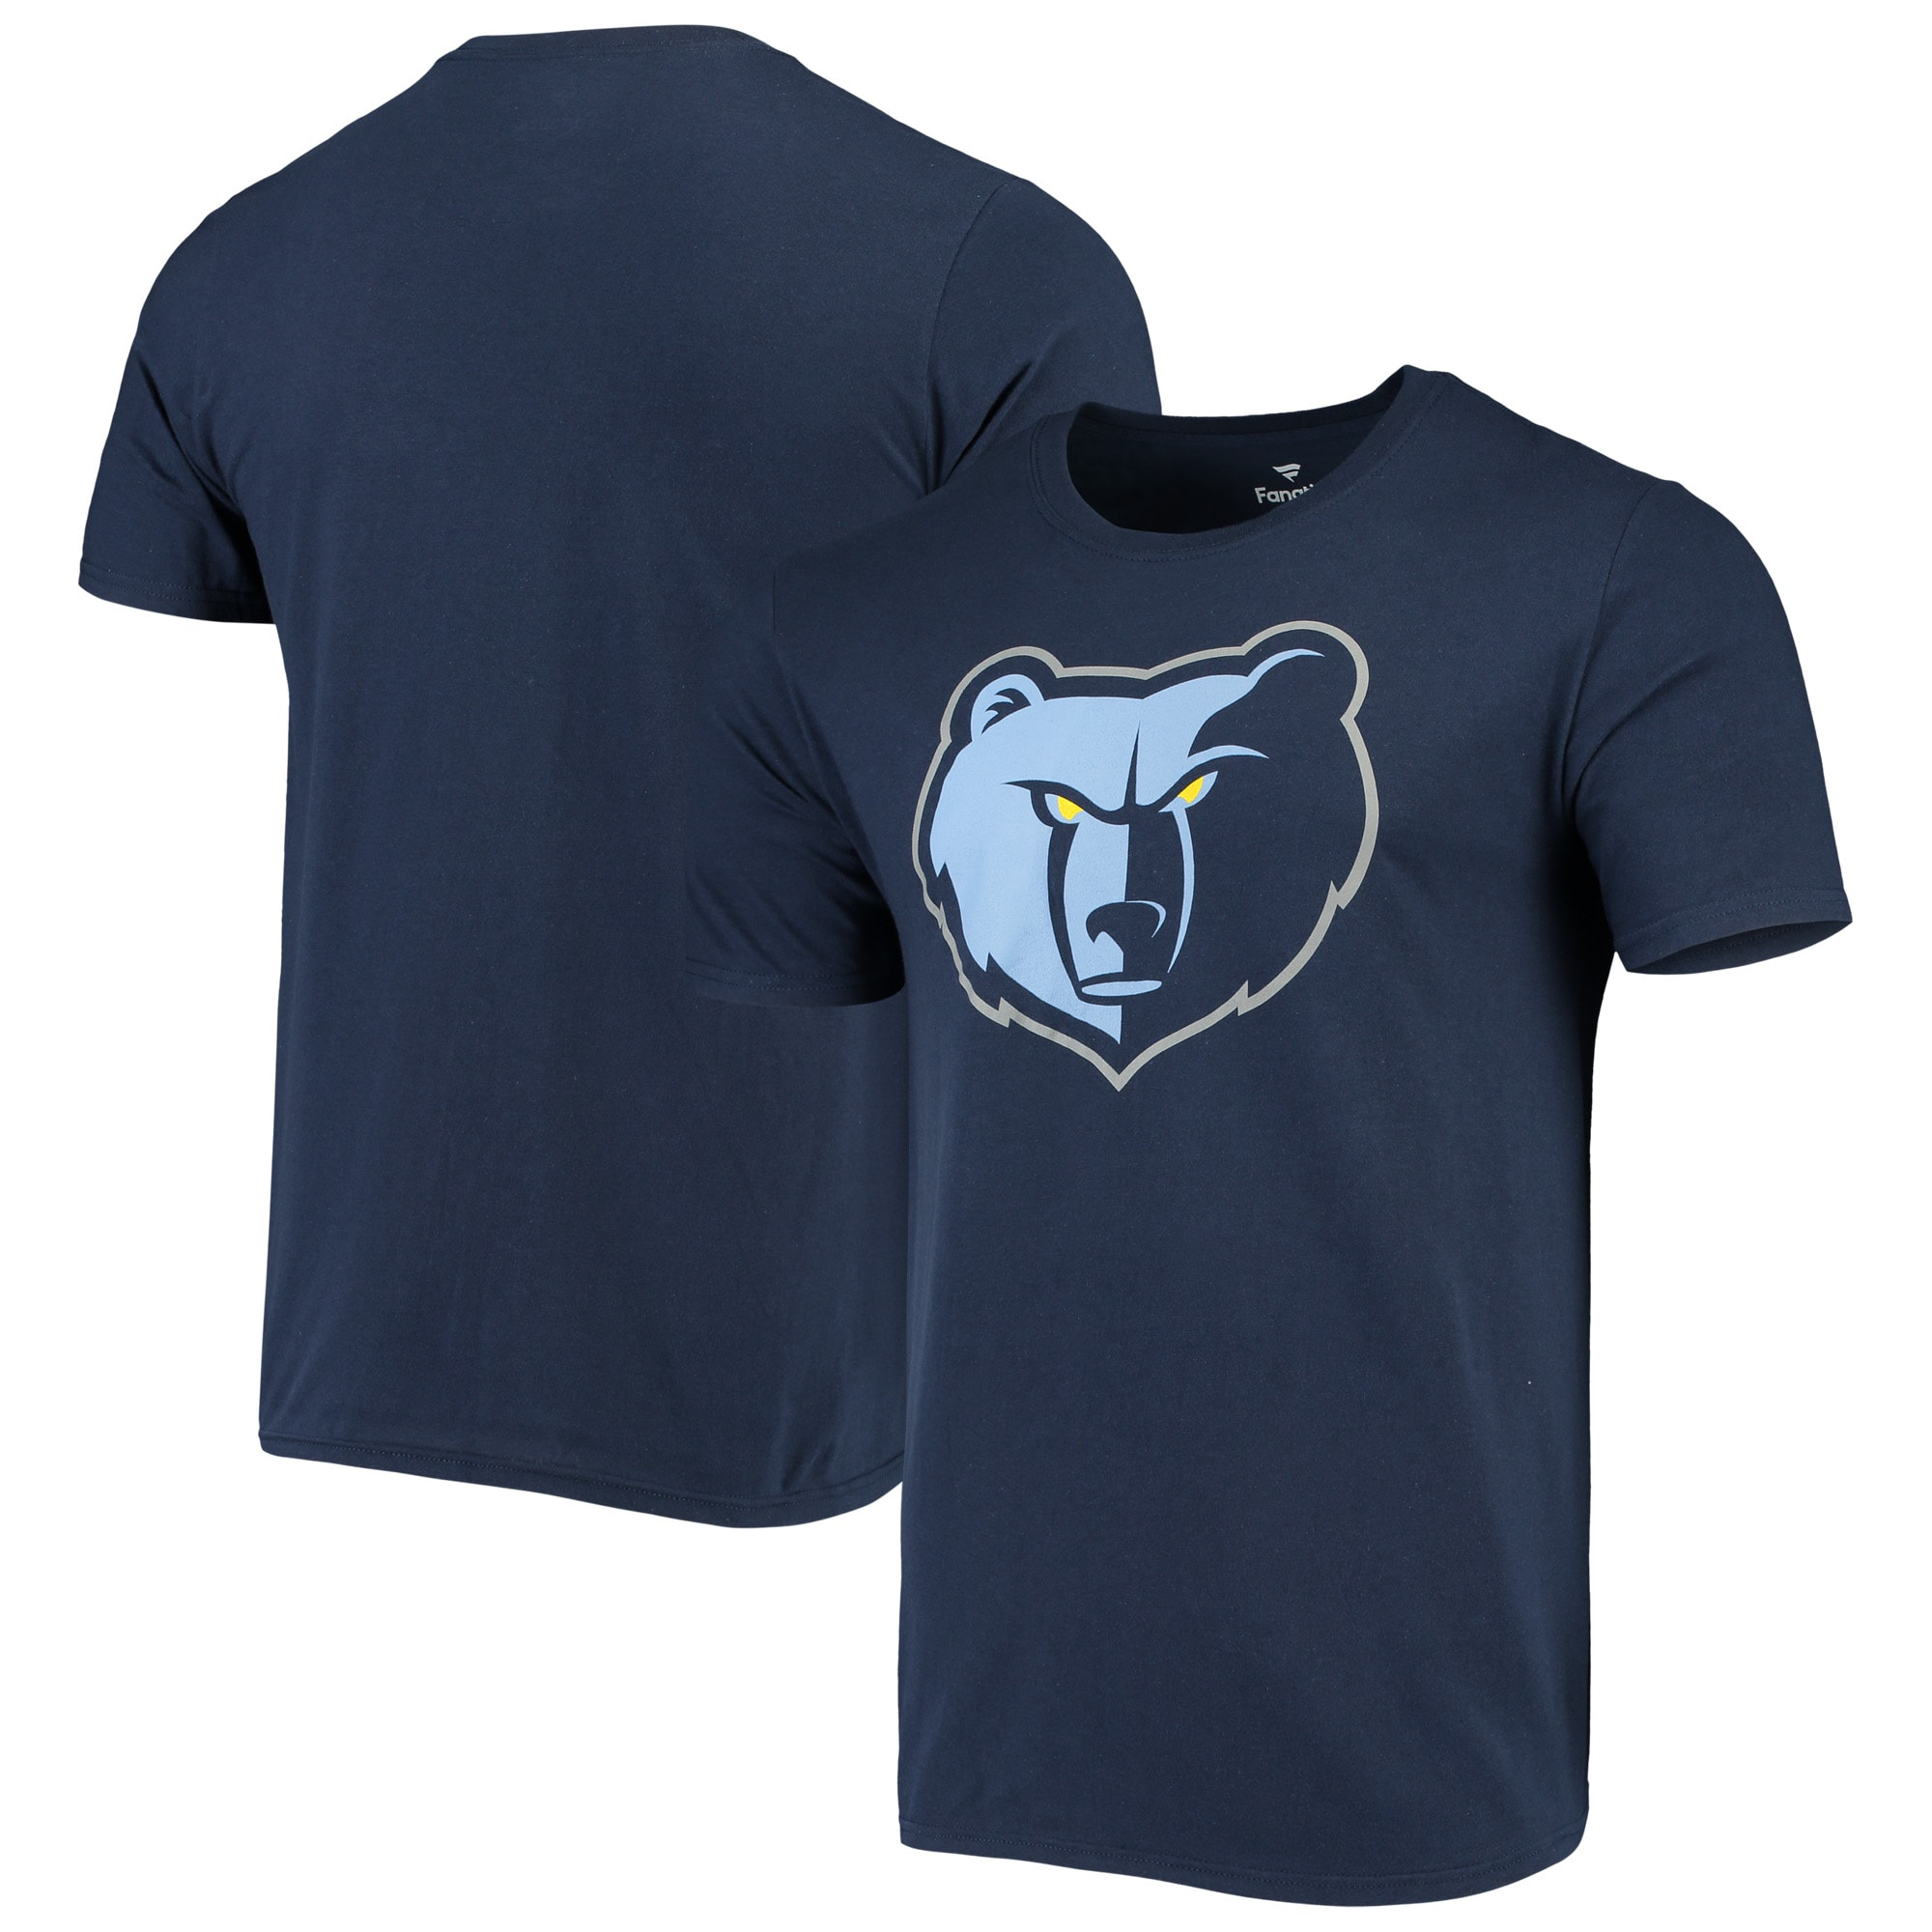 Memphis Grizzlies Fanatics Branded Primary Team Logo T-Shirt - Navy